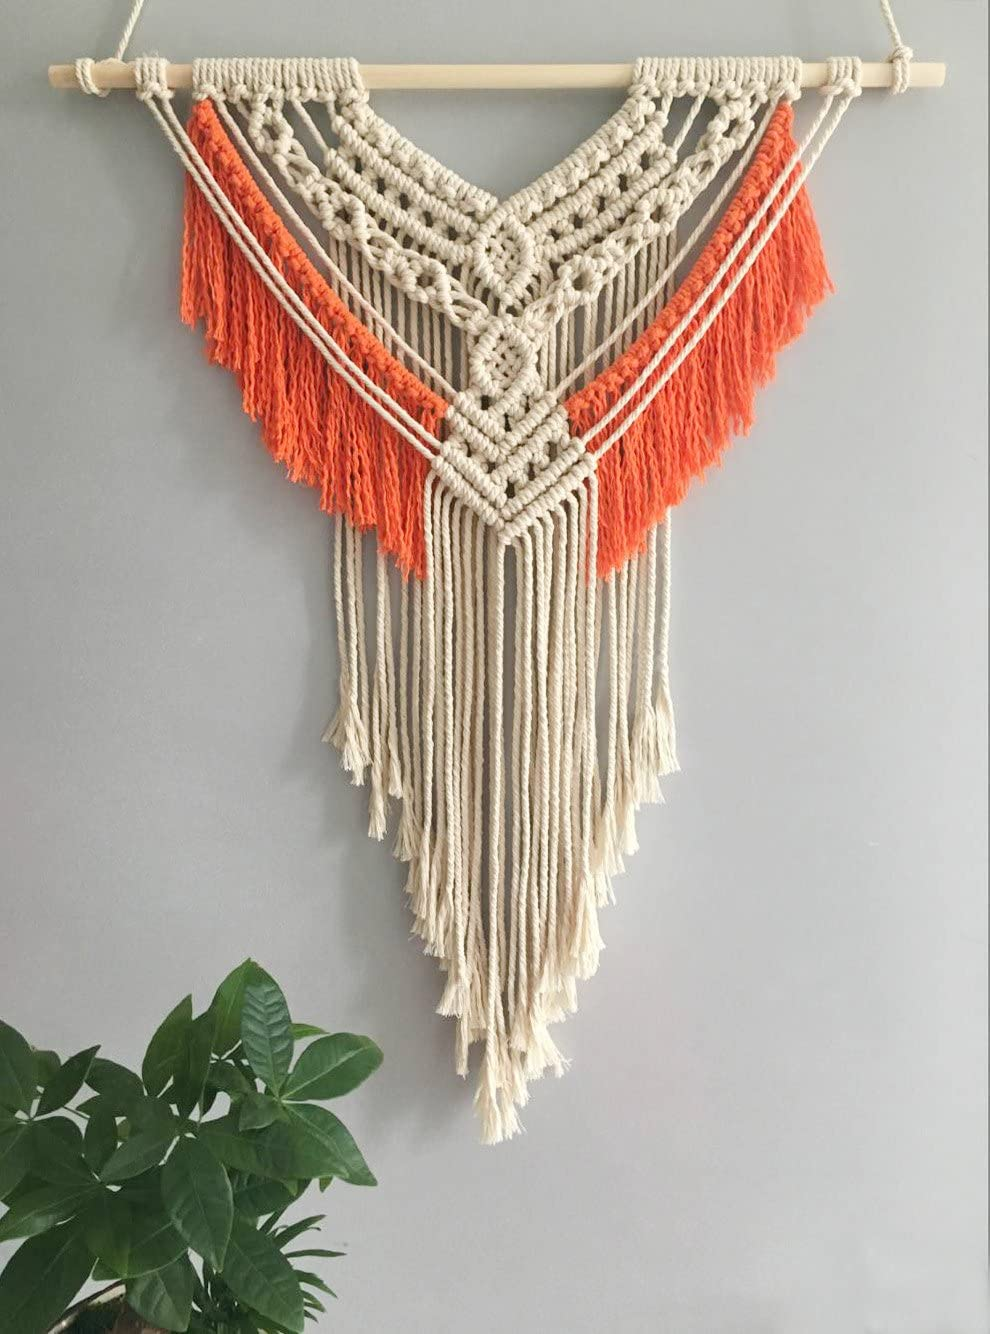 XIULIHUI Bohemia Macrame Wall Hanging Boho Living Room Tapestry Home D cor Wall Tapestries